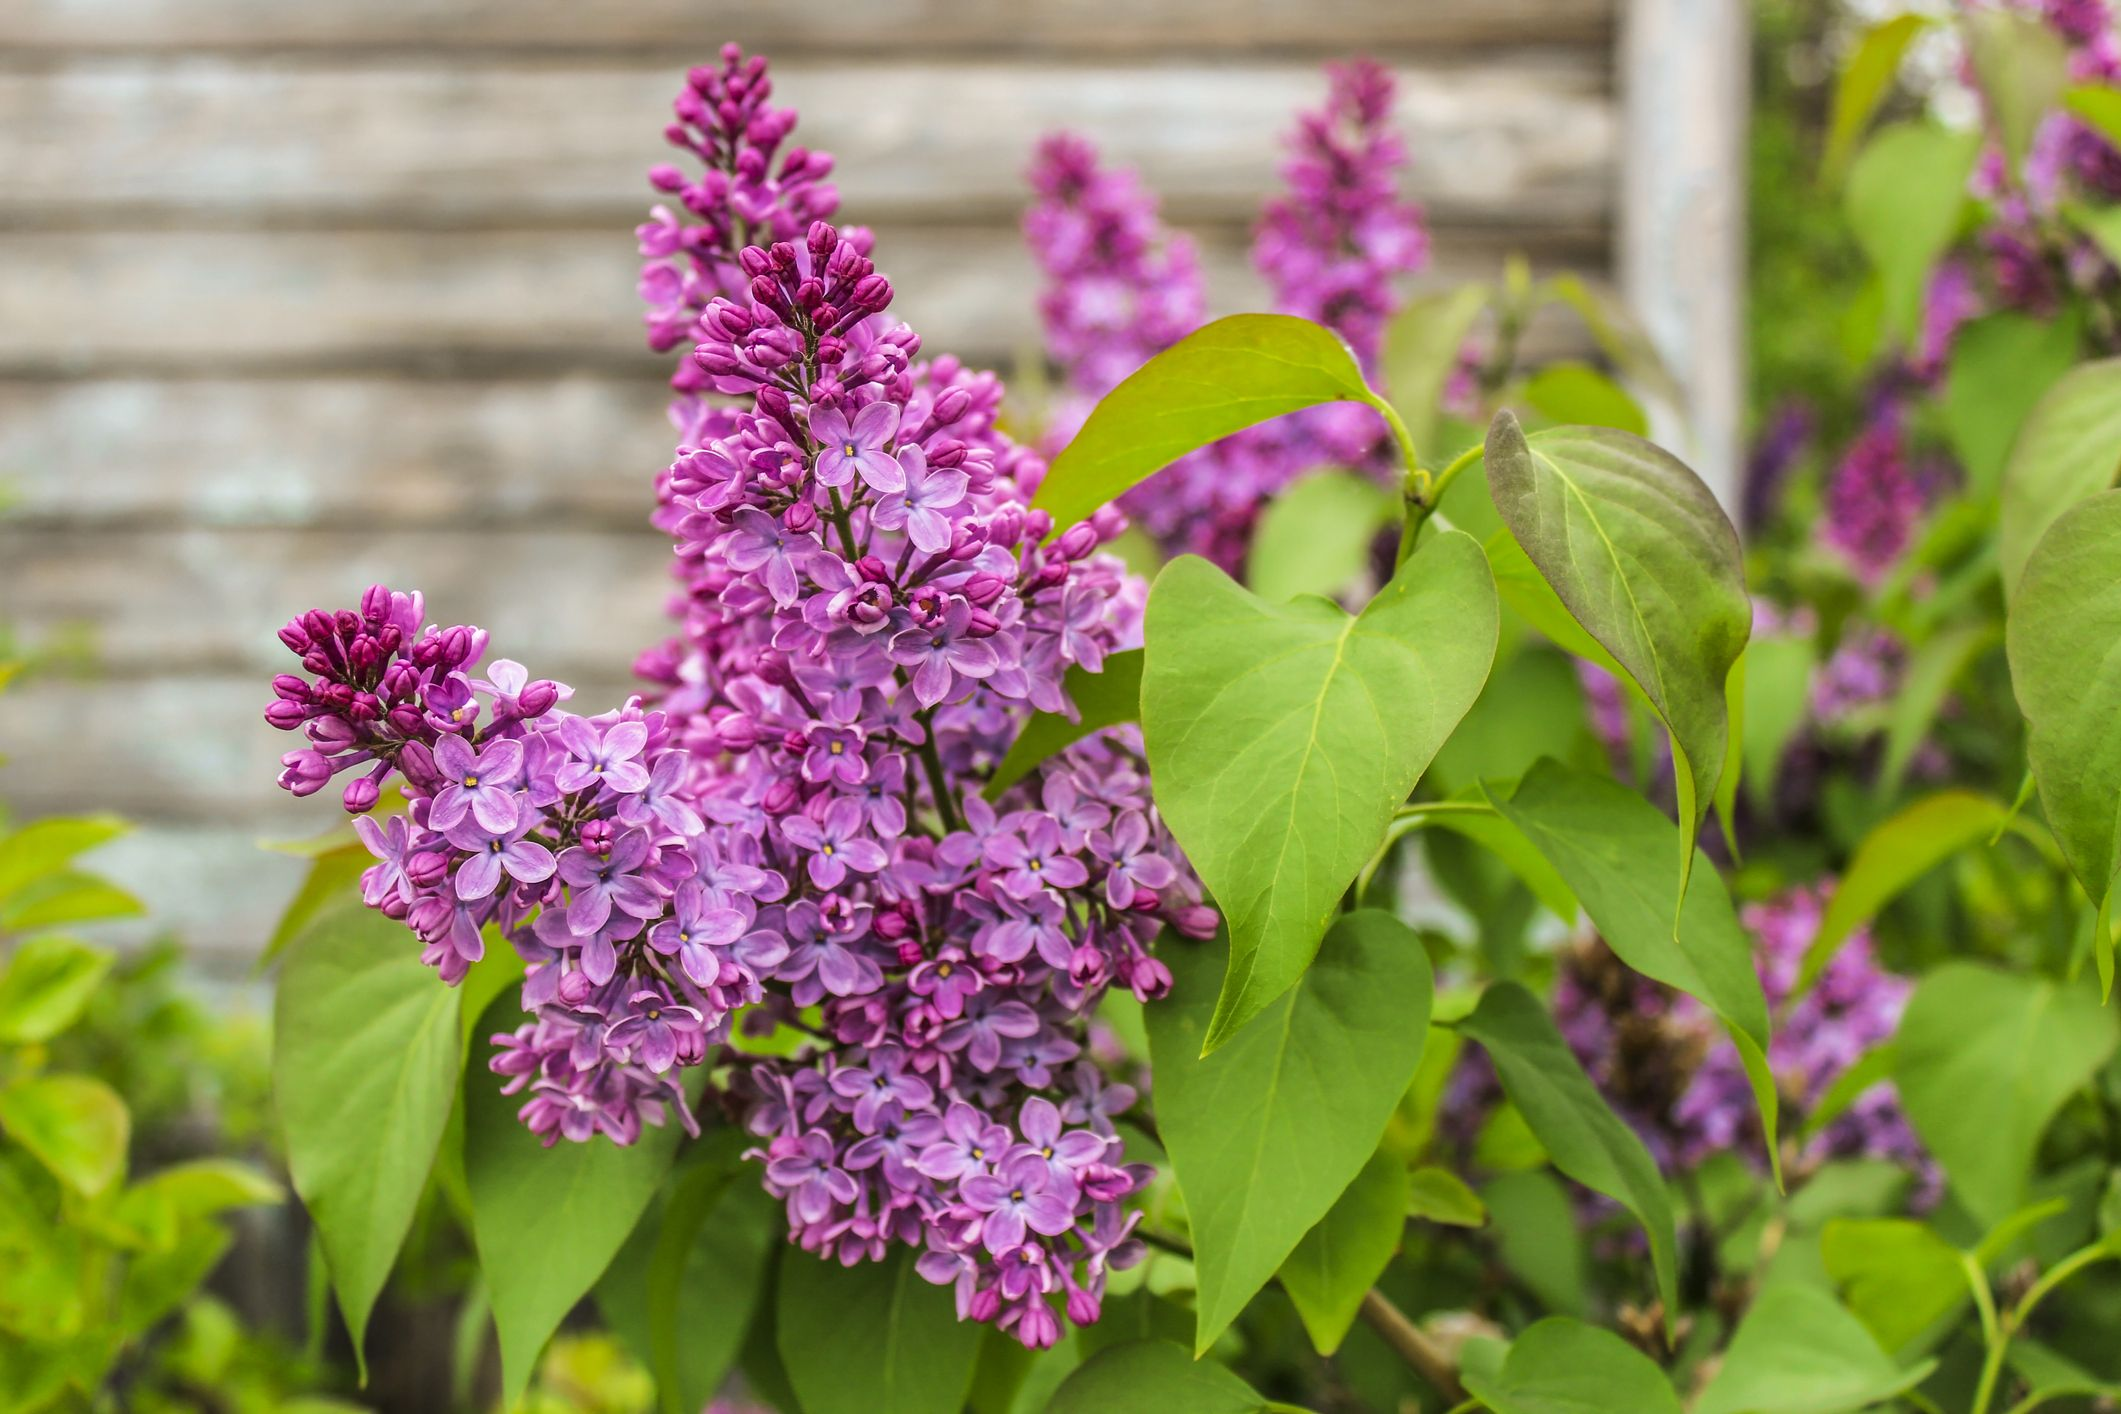 The 10 Most Beautiful Shrubs to Plant in Your Garden